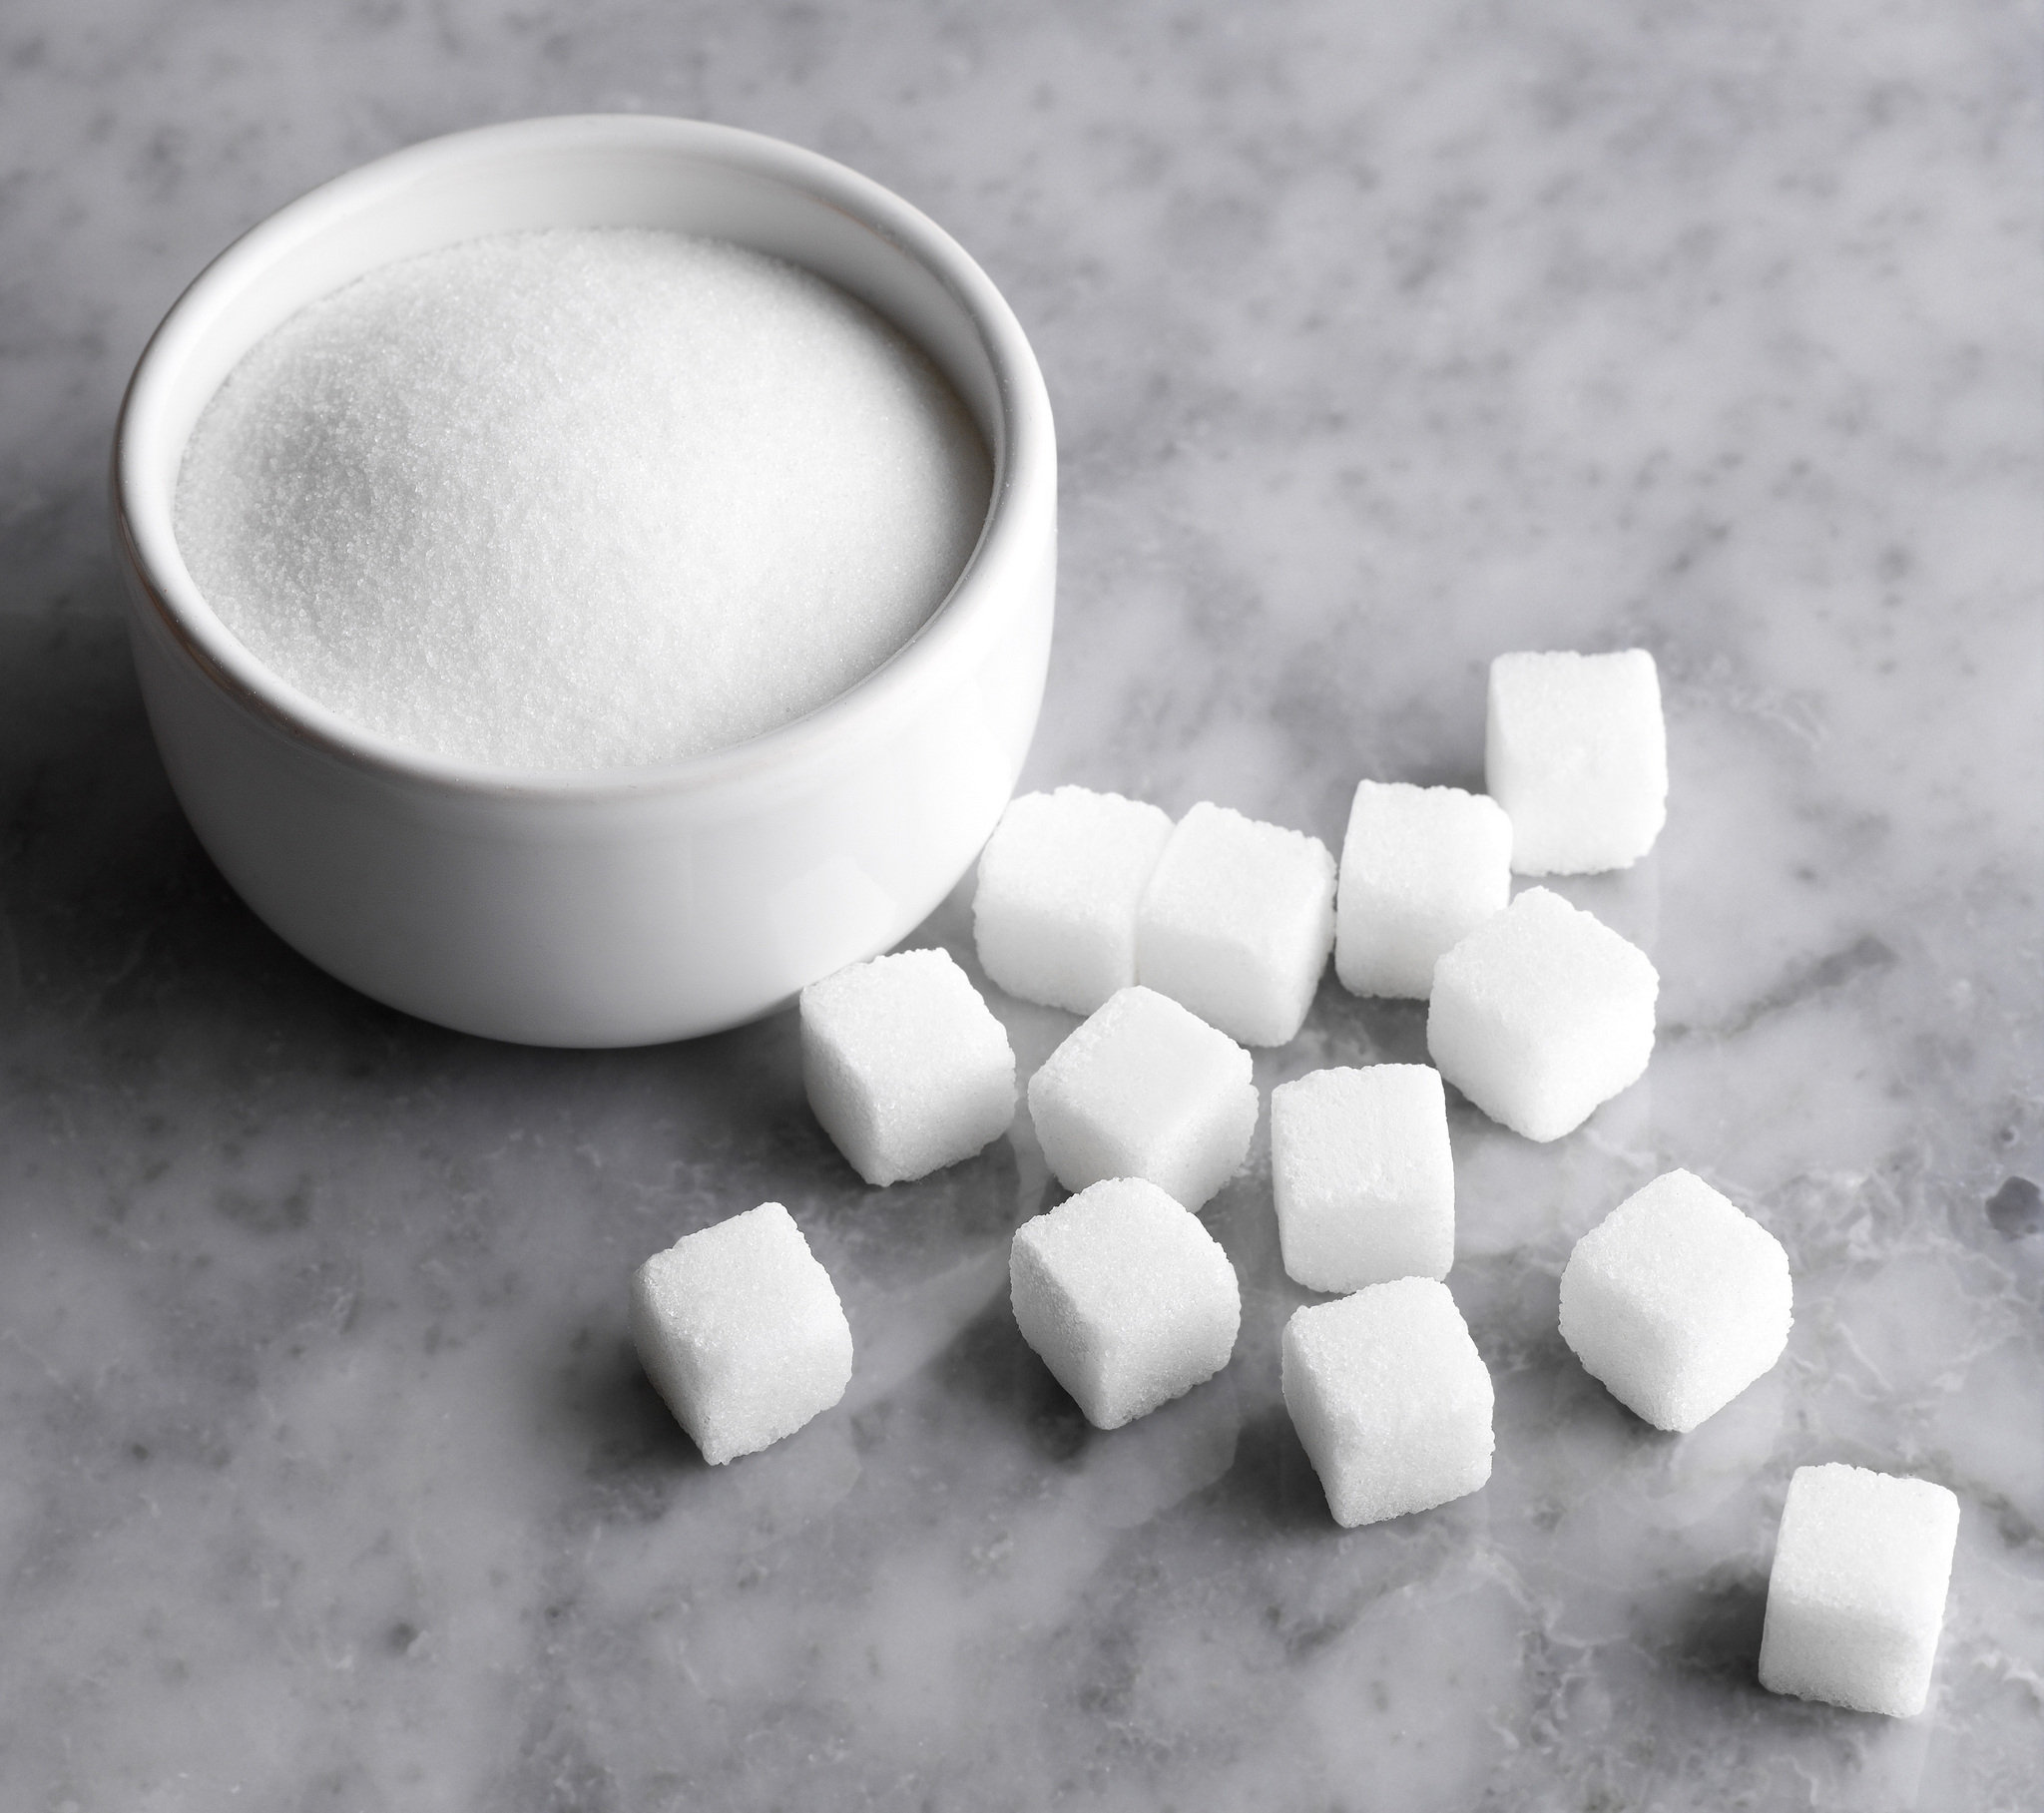 Sugar increases hypertension